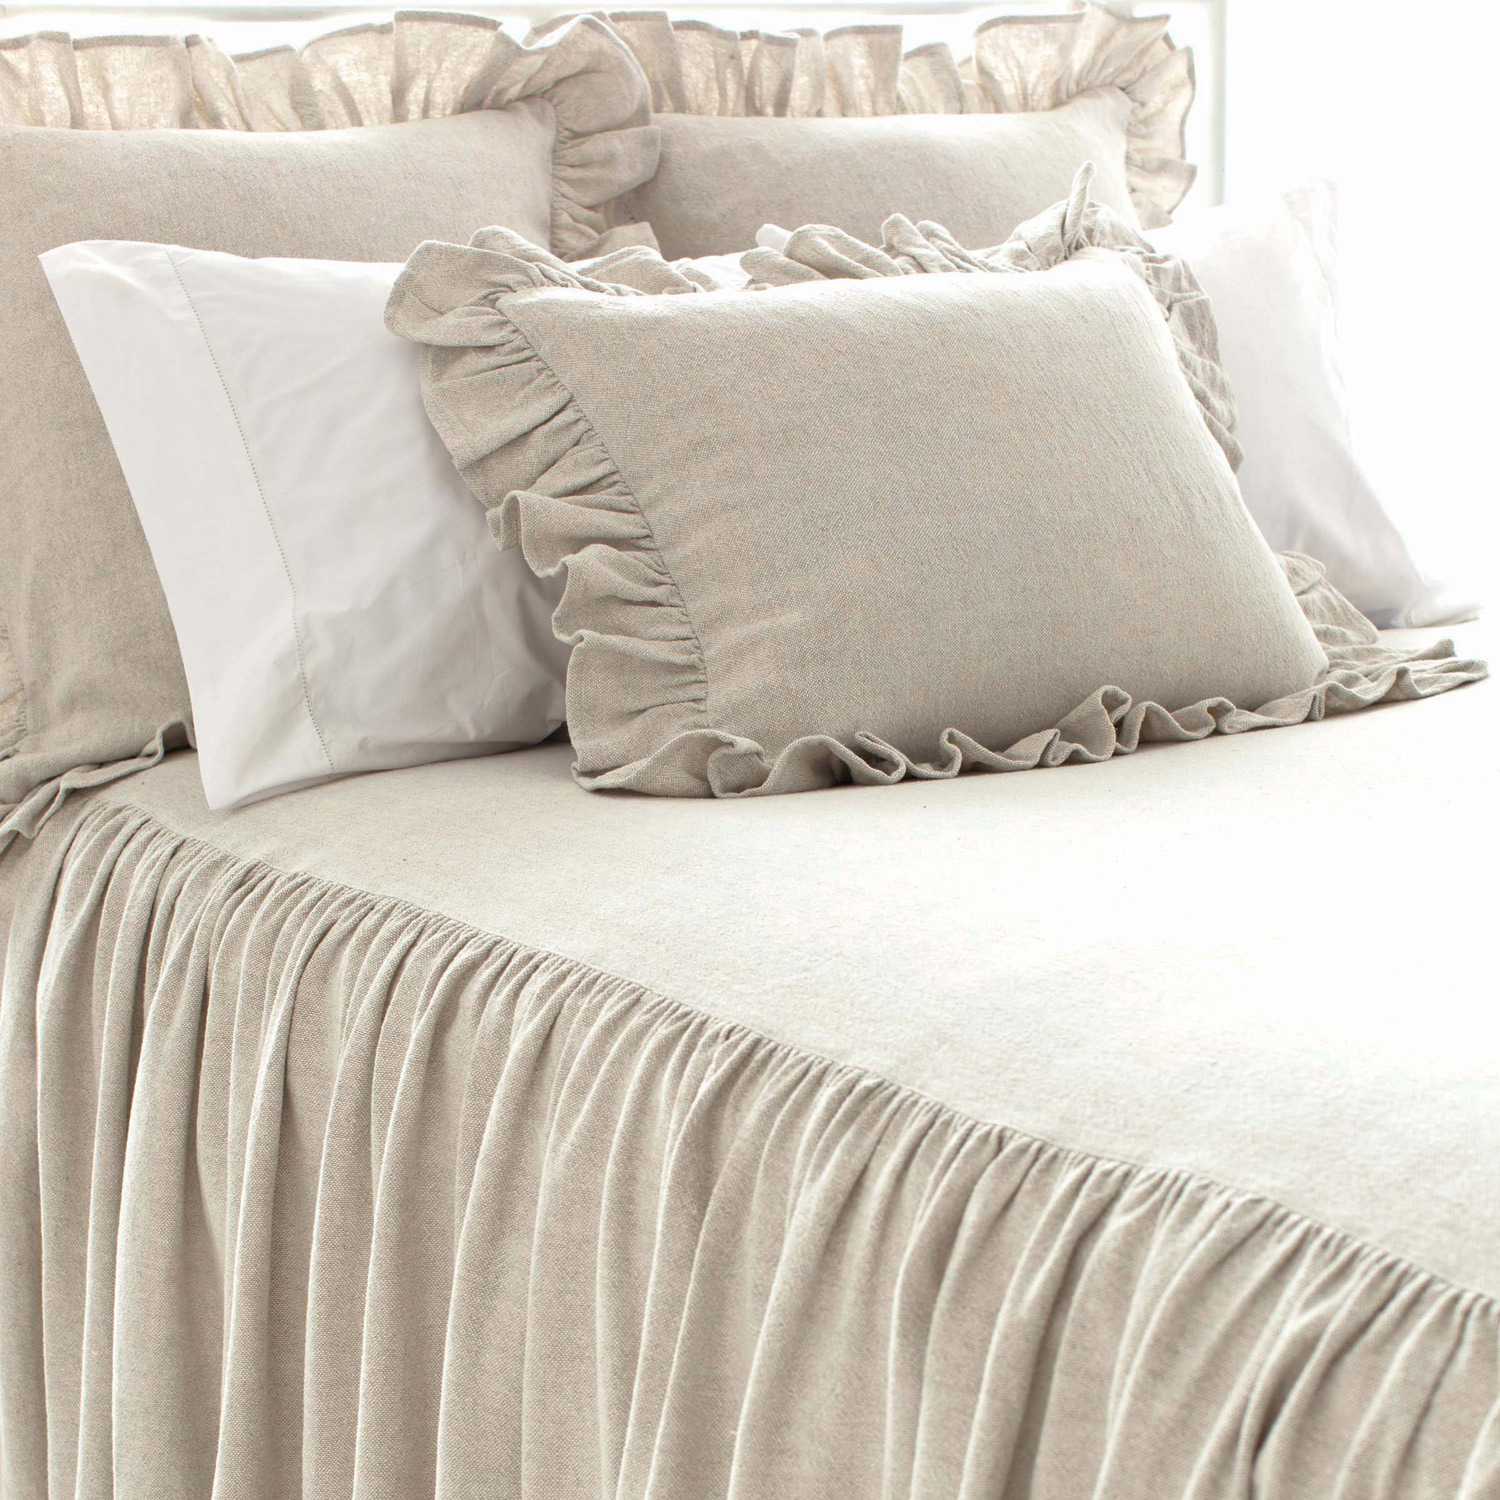 lovely pine cone hill bedding in ivory for bed ideas